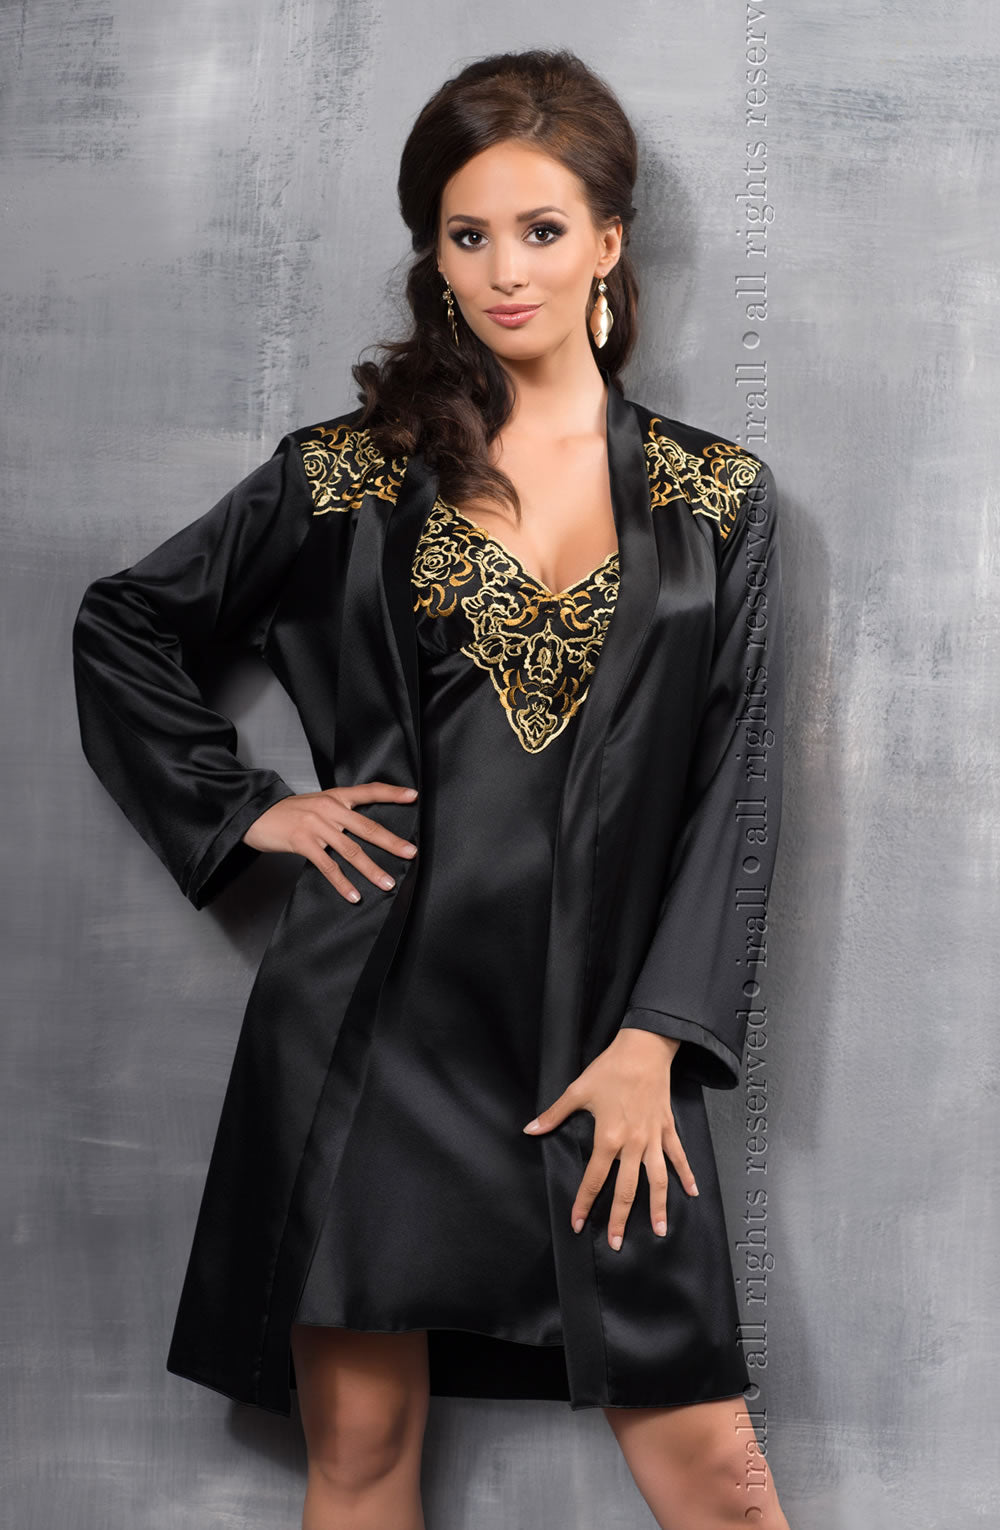 Irall Black Satin Dressing Gown With Gold Embroidery